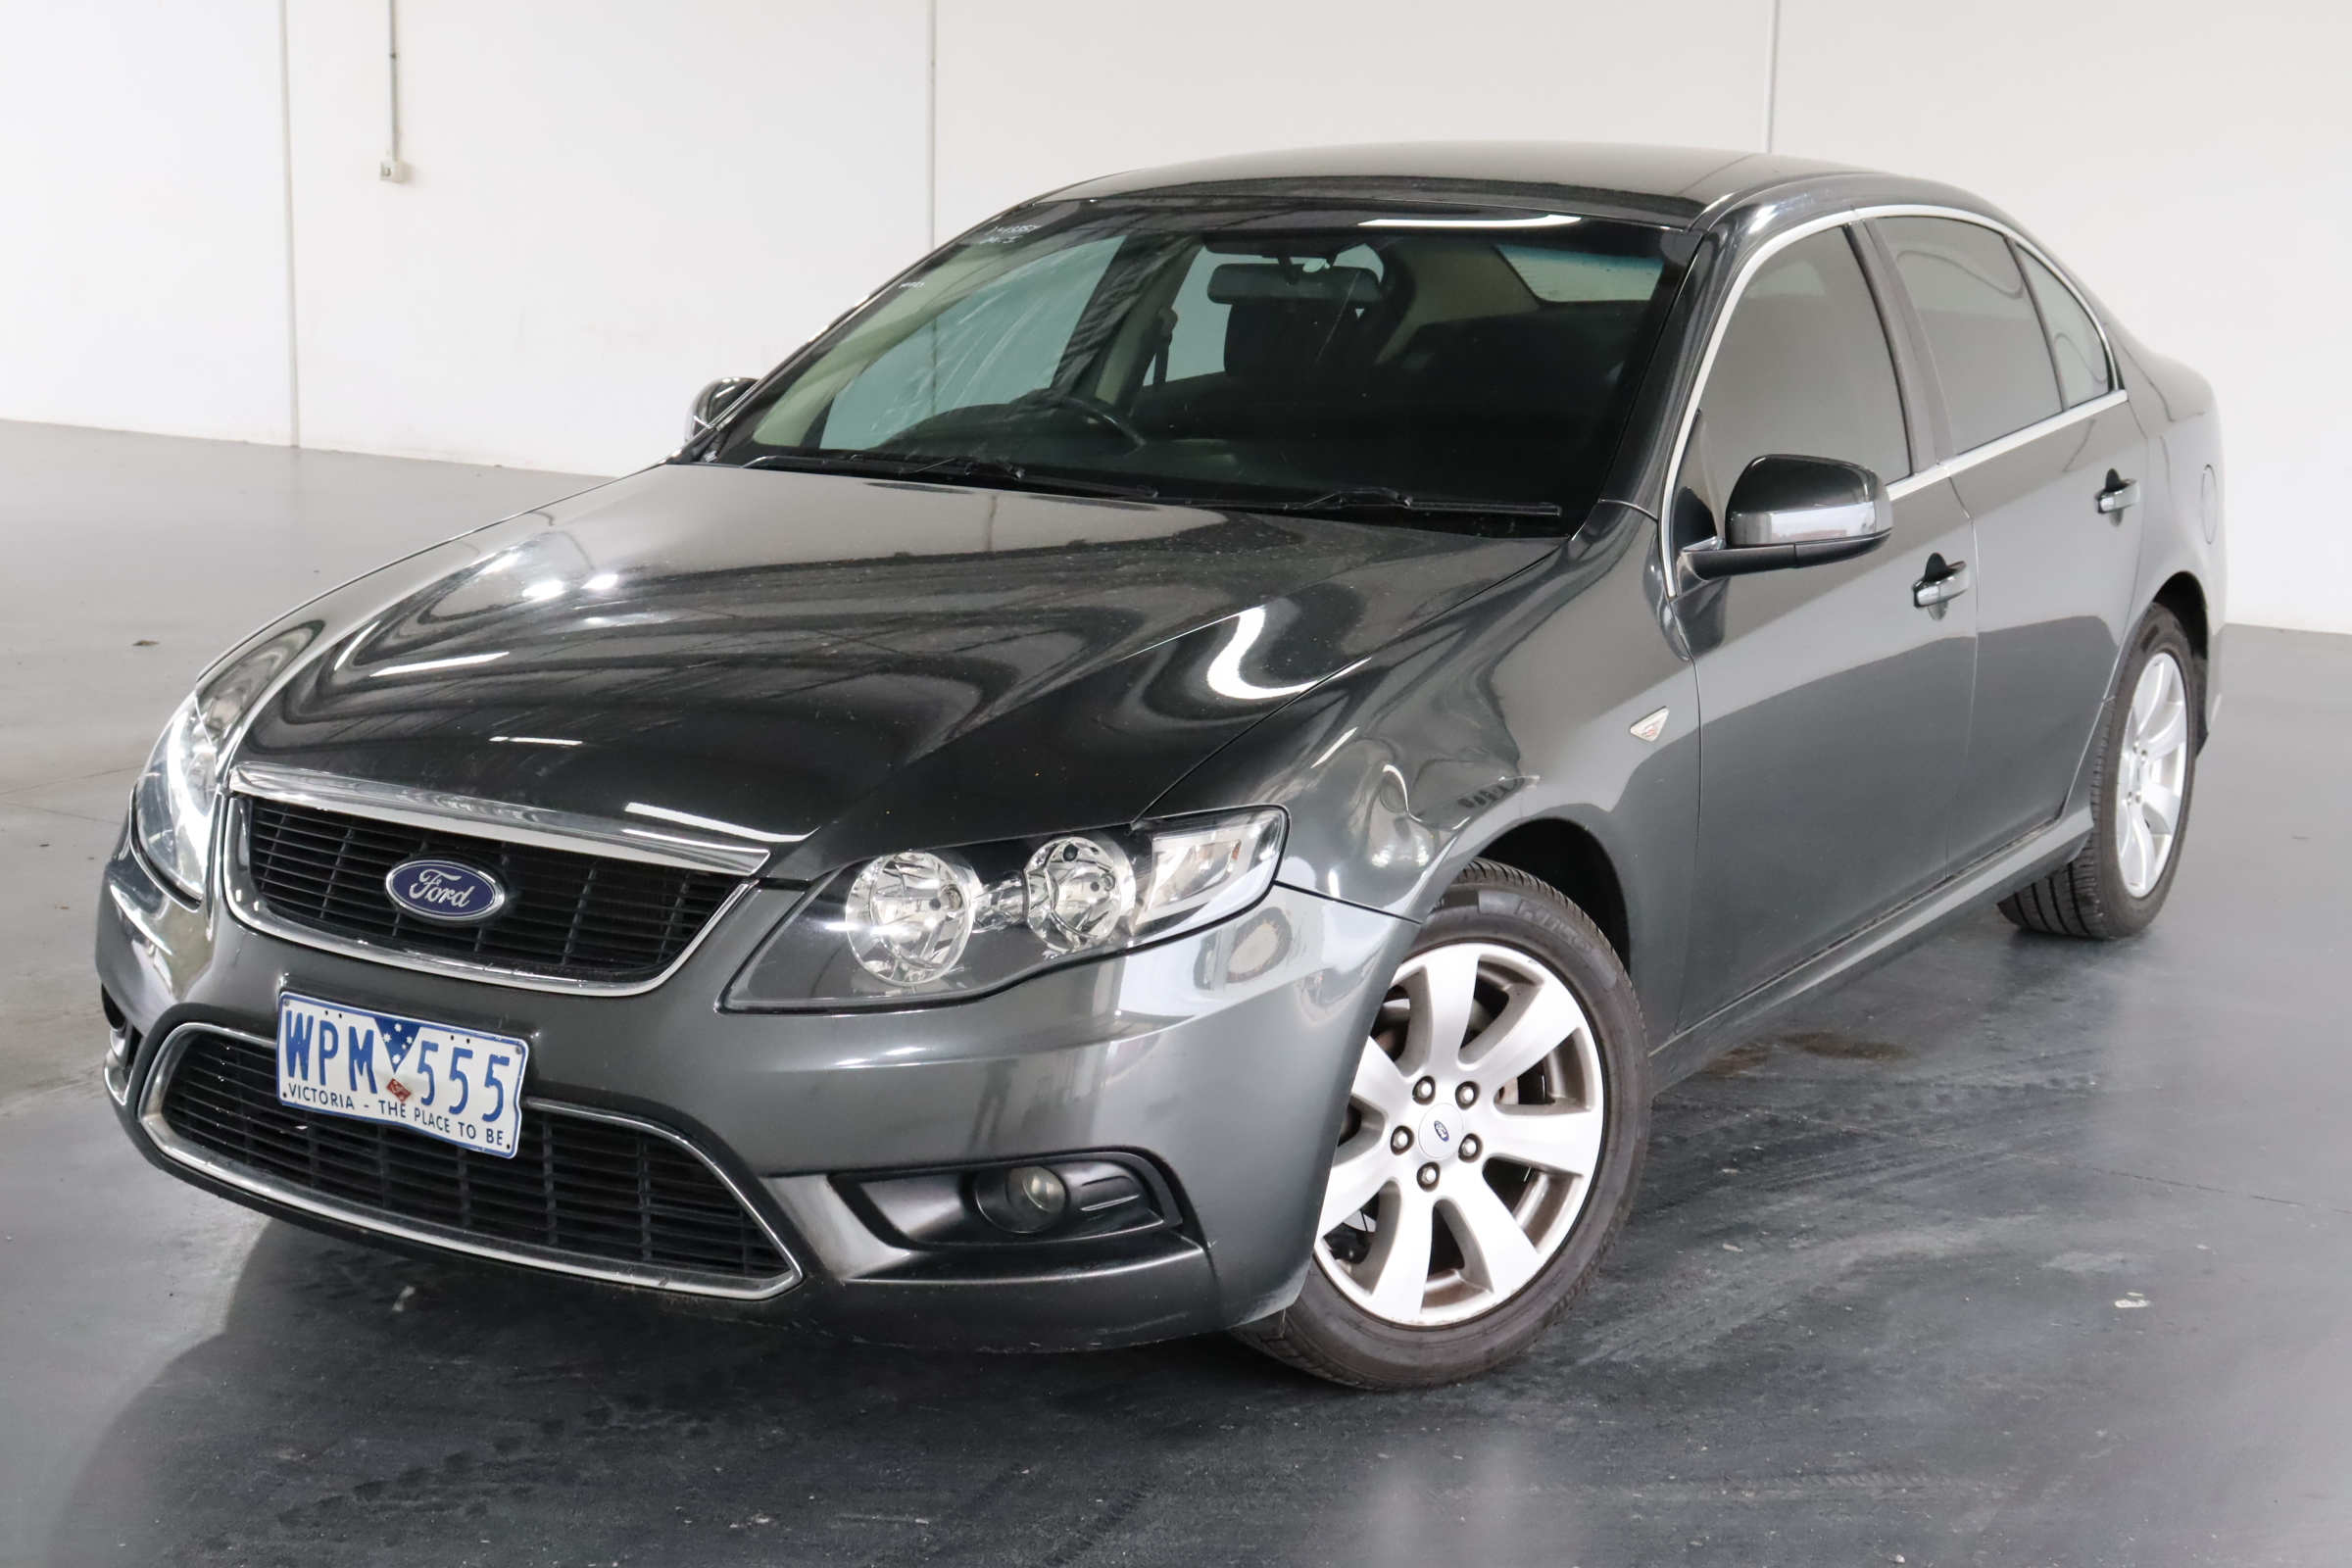 2008 Ford Falcon G6 FG Automatic Sedan